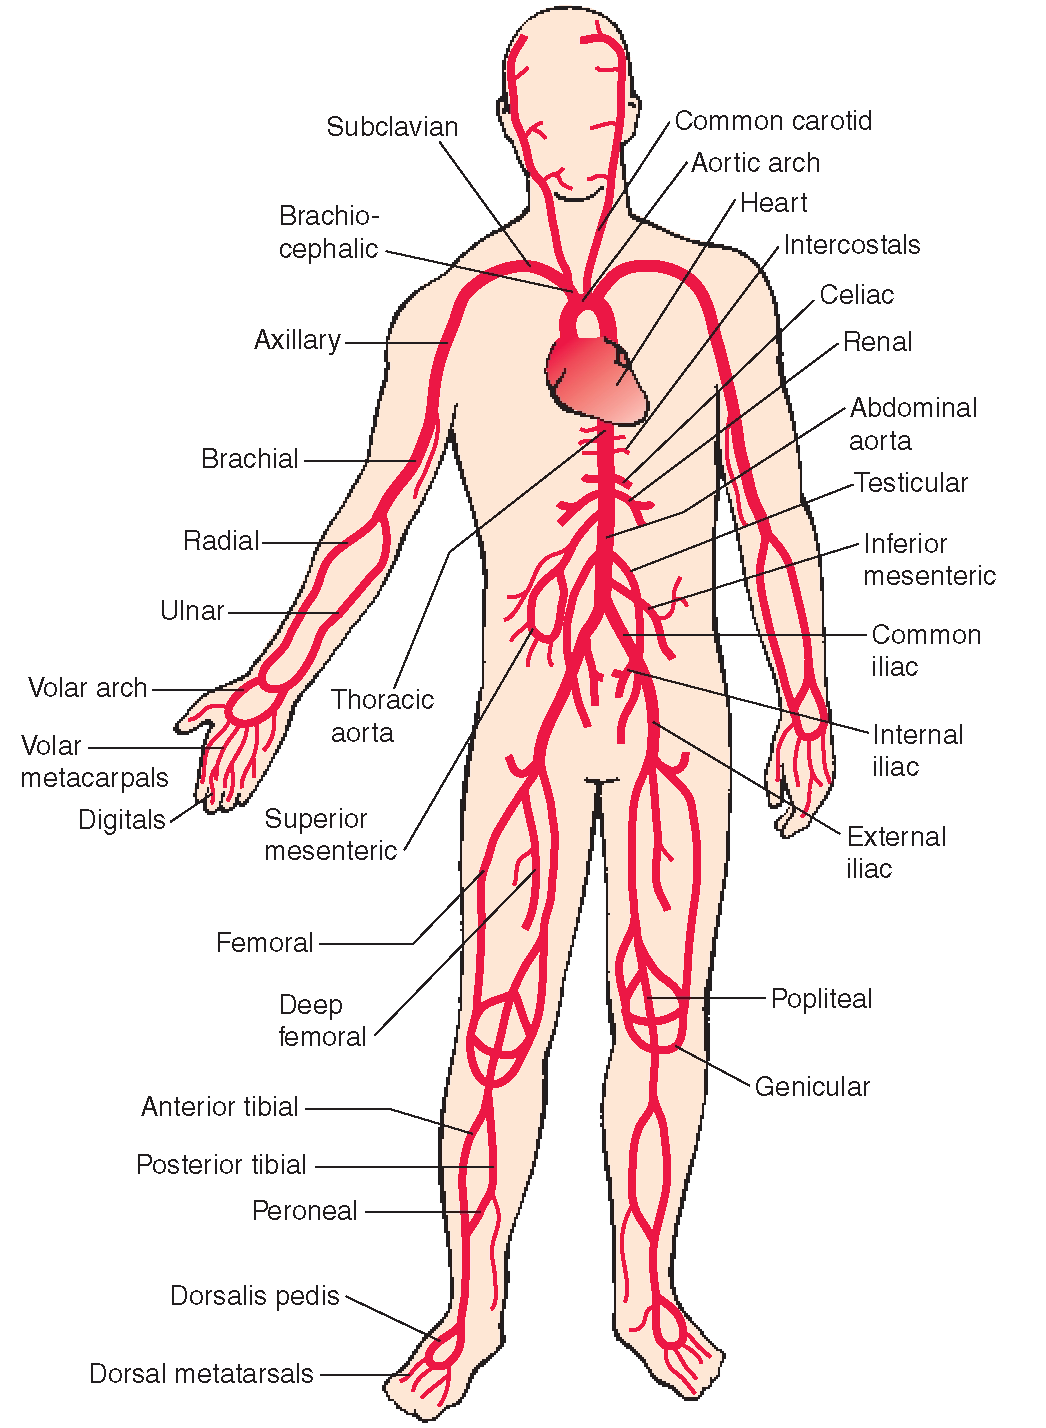 The Cardiovascular System (Structure and Function) (Nursing) Part 2